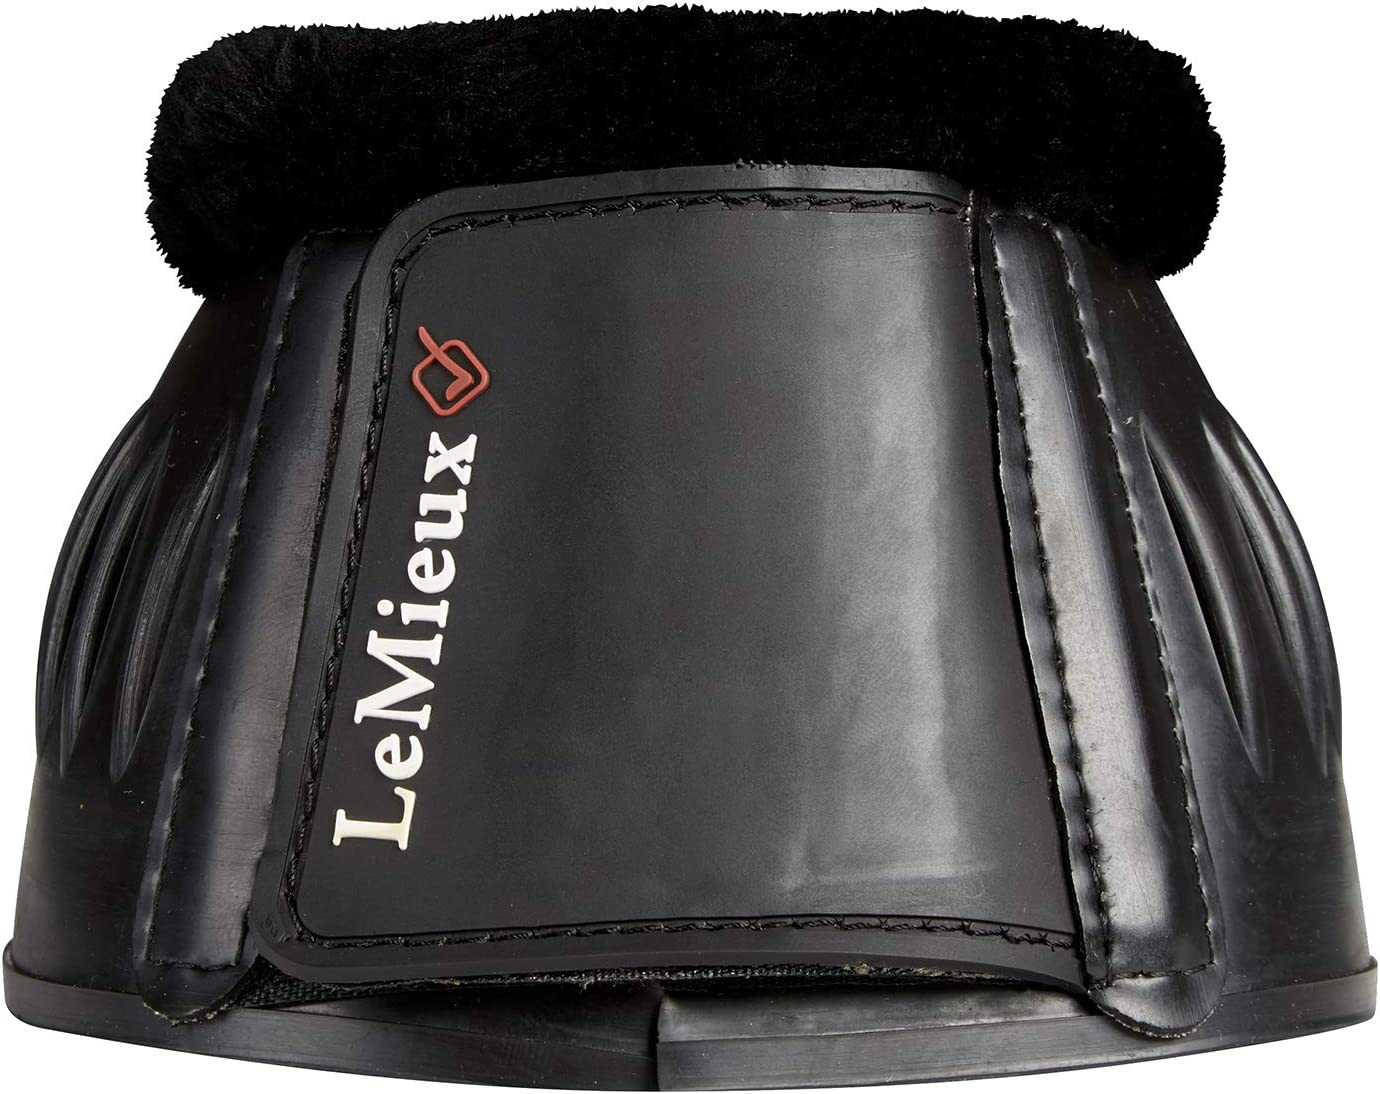 Black XX-Large LeMieux Unisexs Rubber Bell Boots with Fleece Pair Over Reach